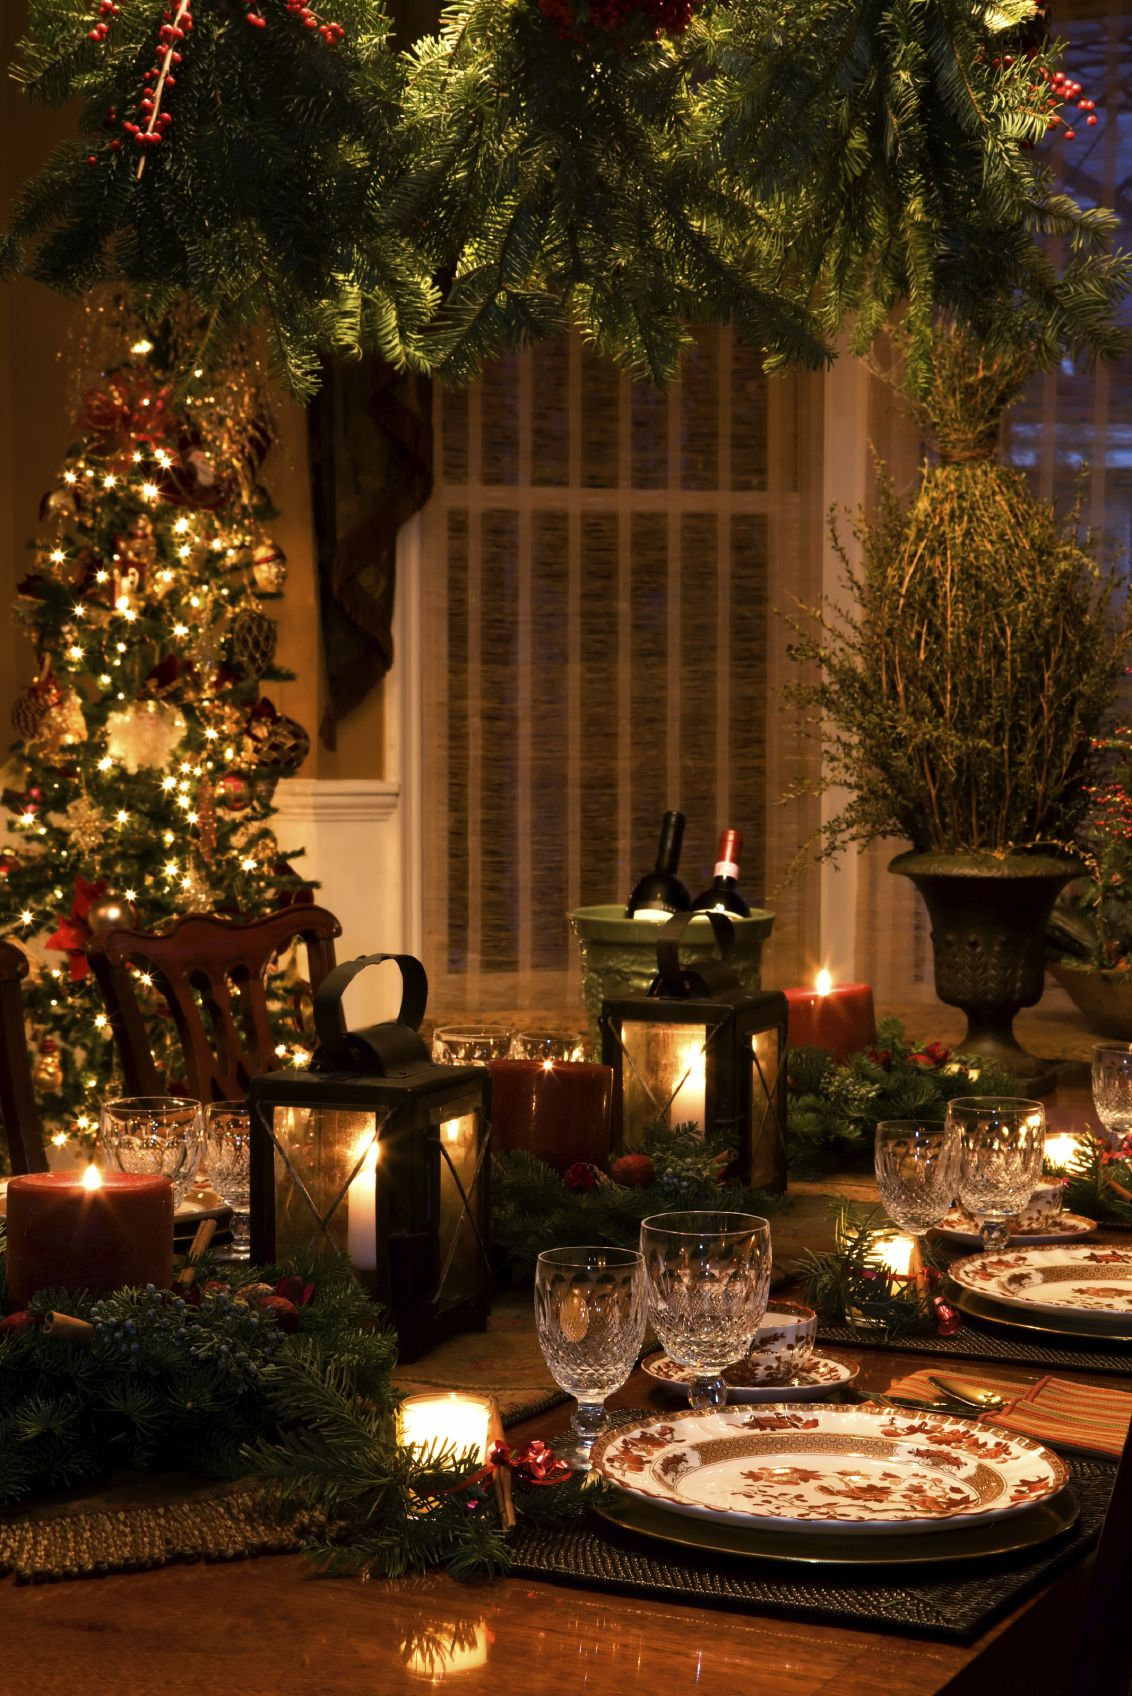 Christmas Tree Ideas Christmas interiors, Indoor